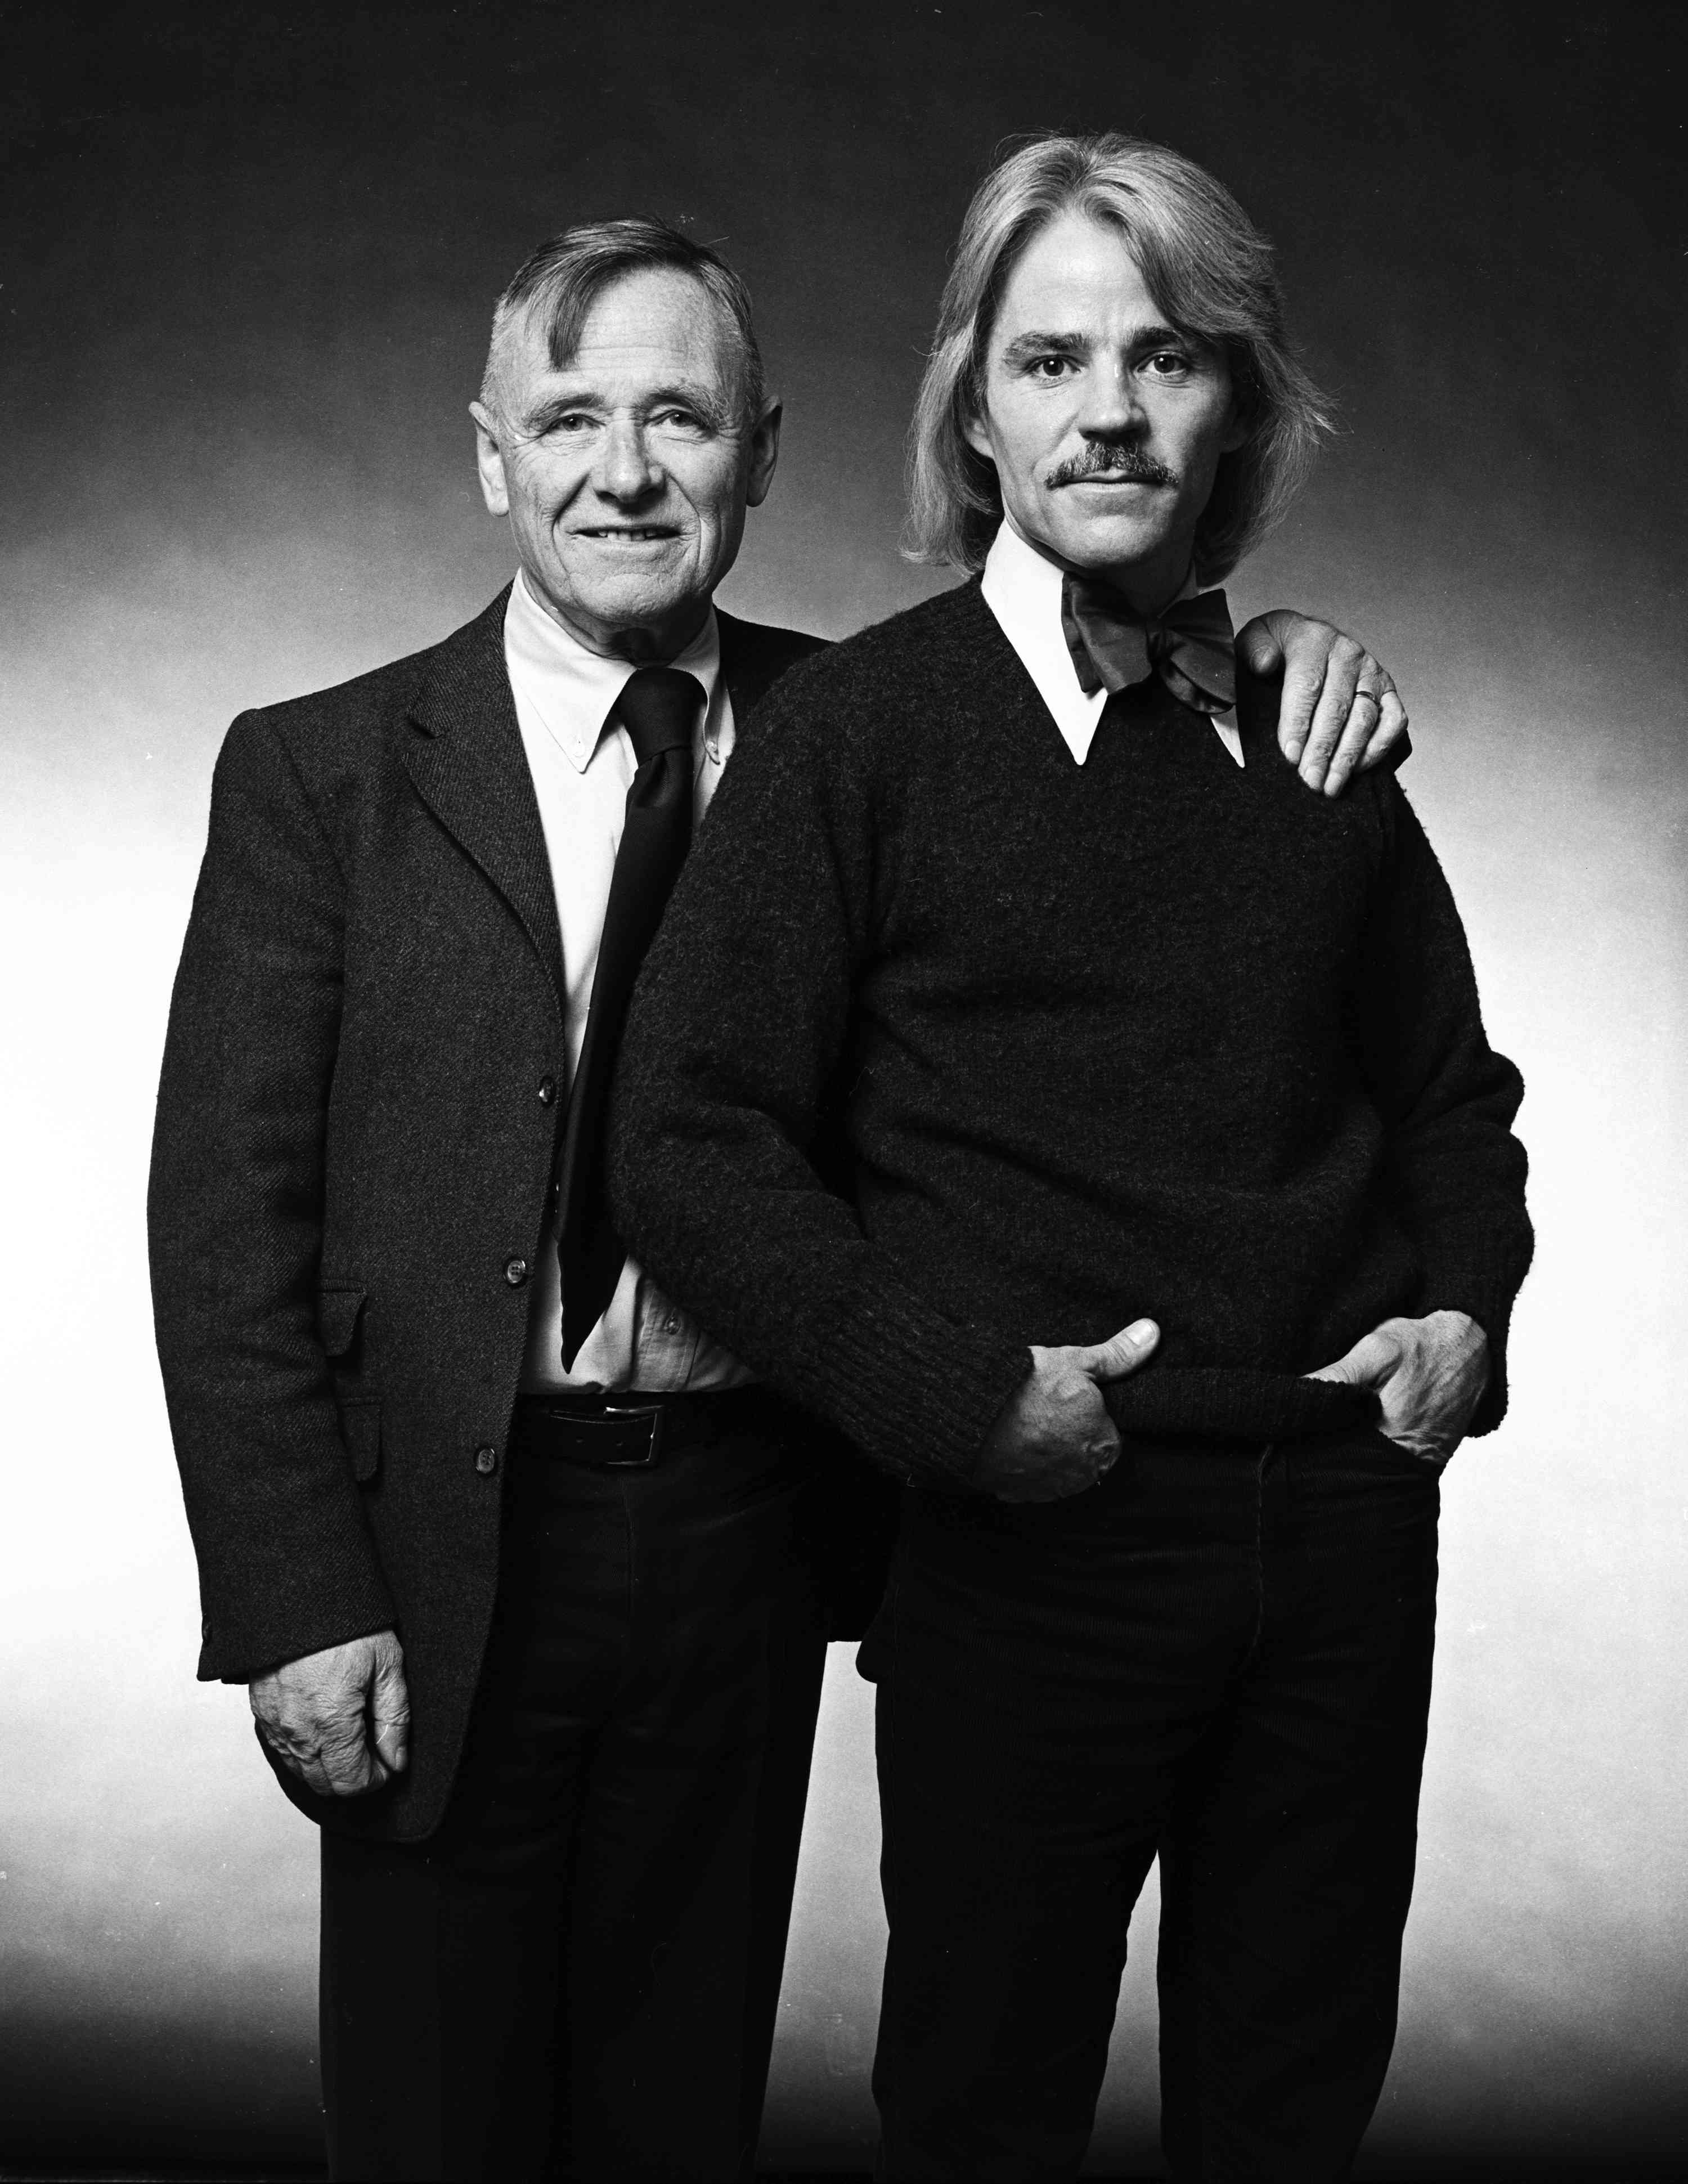 Christopher Isherwood and Don Bacardy